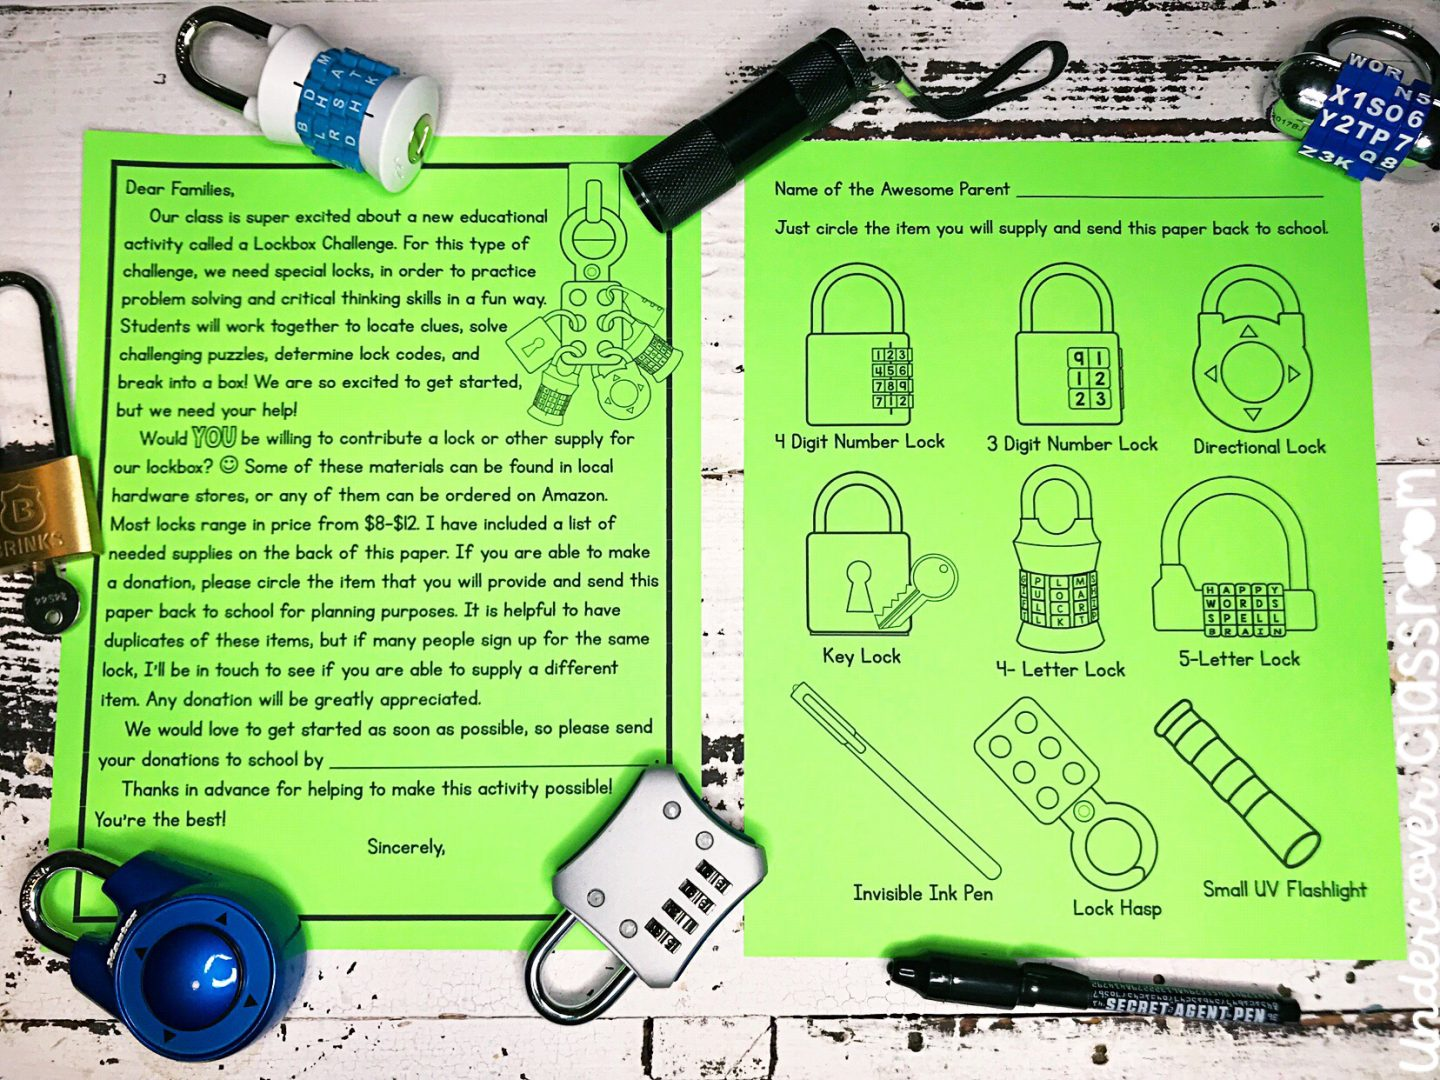 Get free locks for your lockbox with this free letter that you can send home to parents.